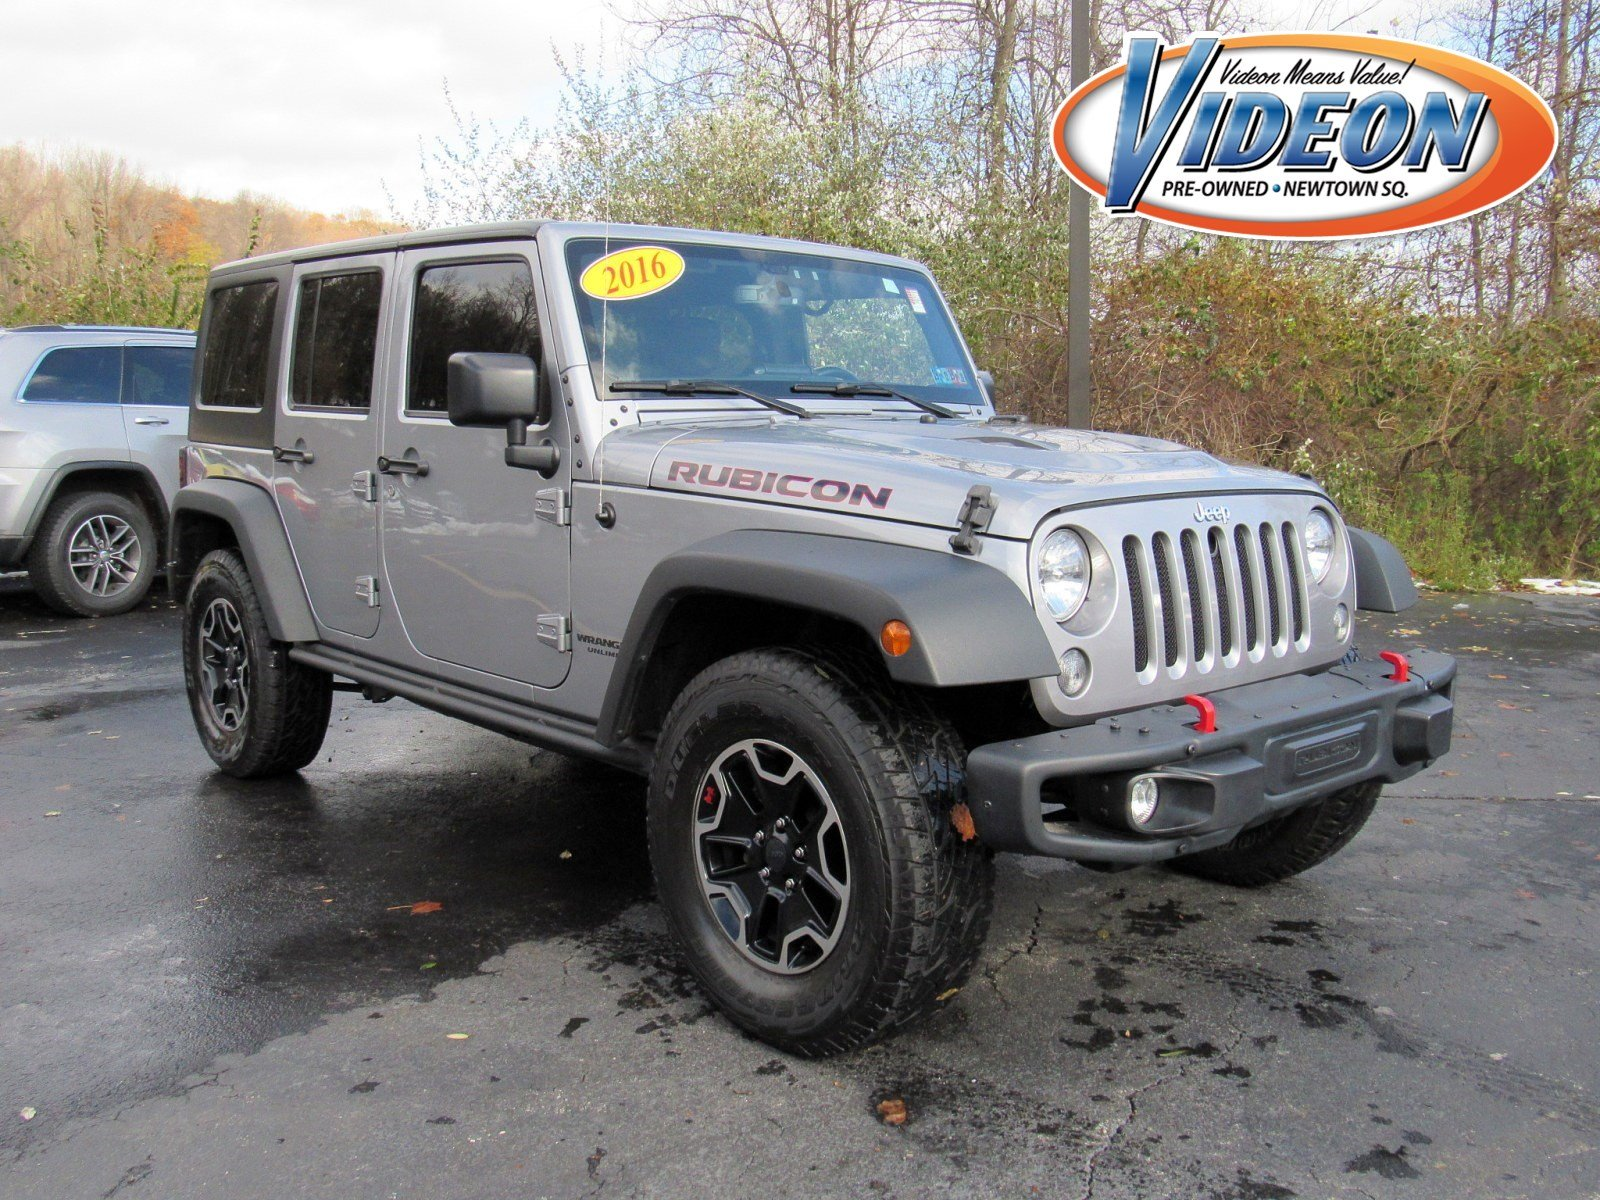 Certified Pre-Owned 2016 Jeep Wrangler Unlimited Rubicon Hard Rock